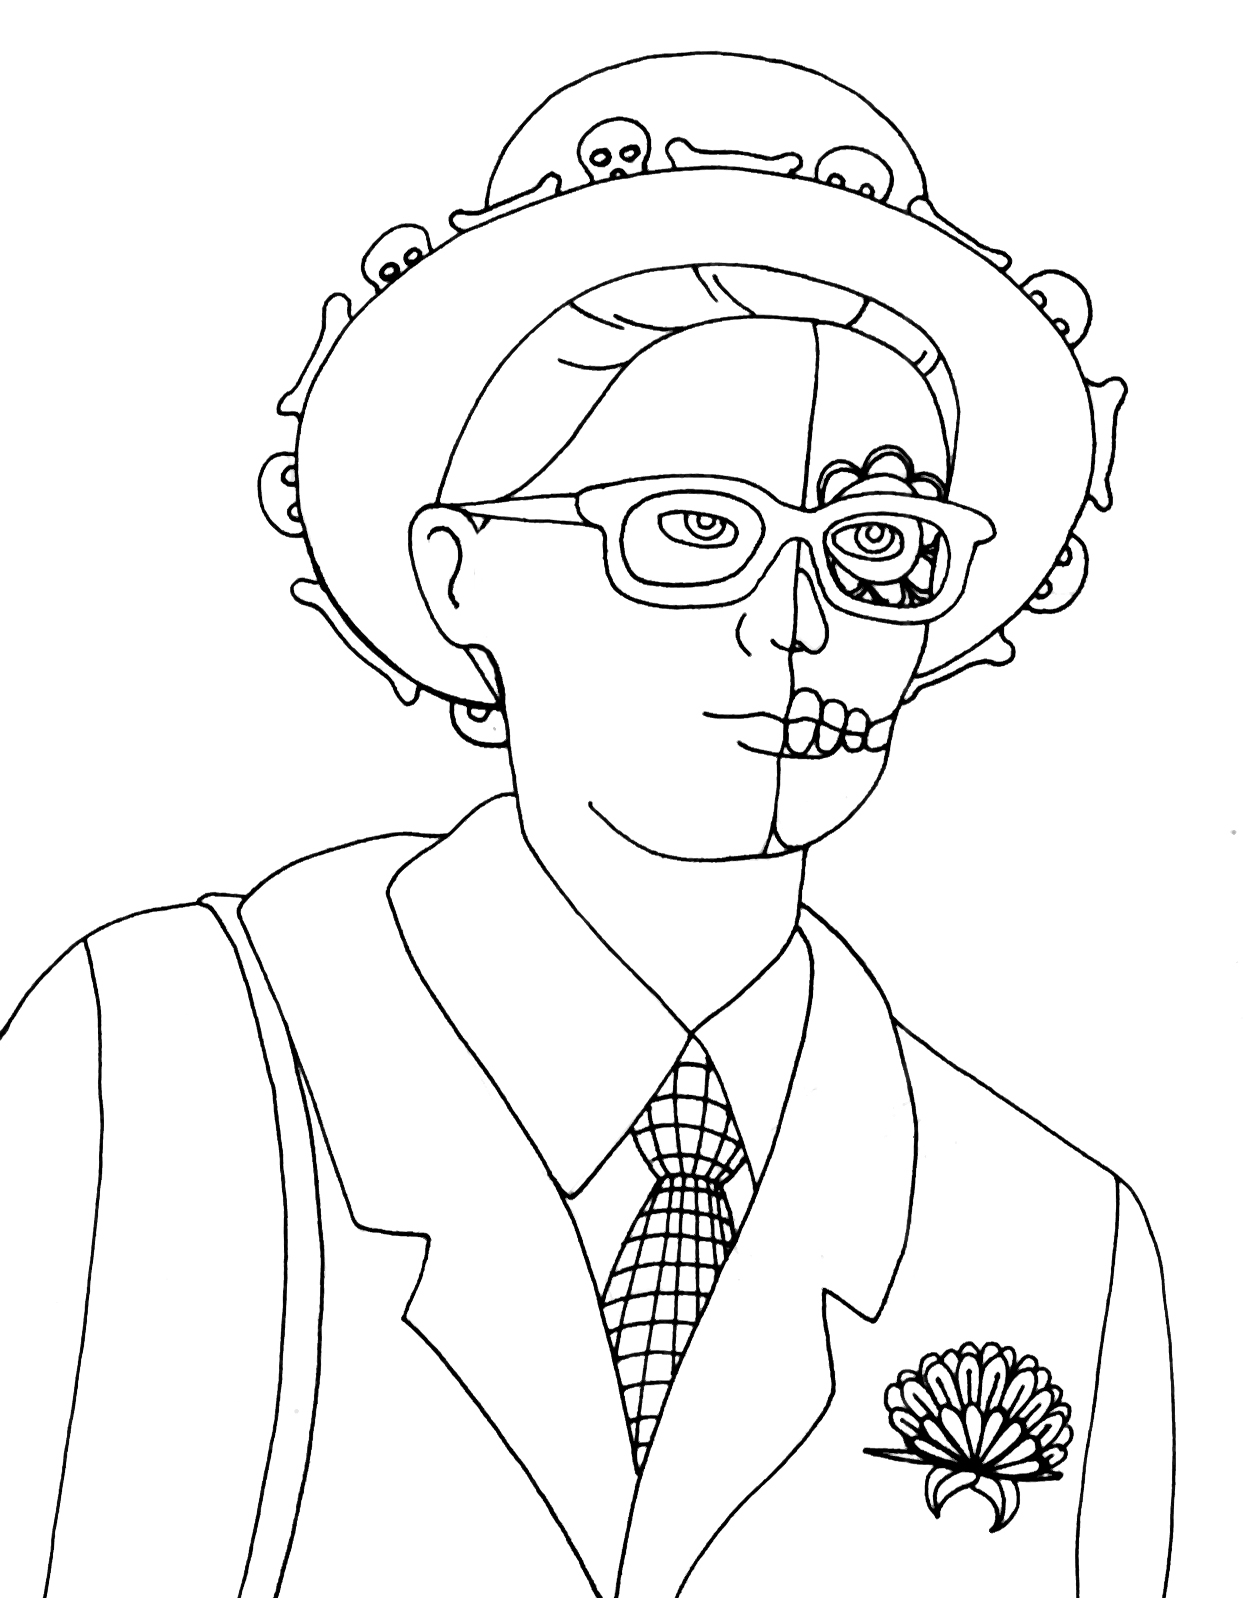 Yucca Flats, N.M.: Wenchkin's Coloring Pages - Parade